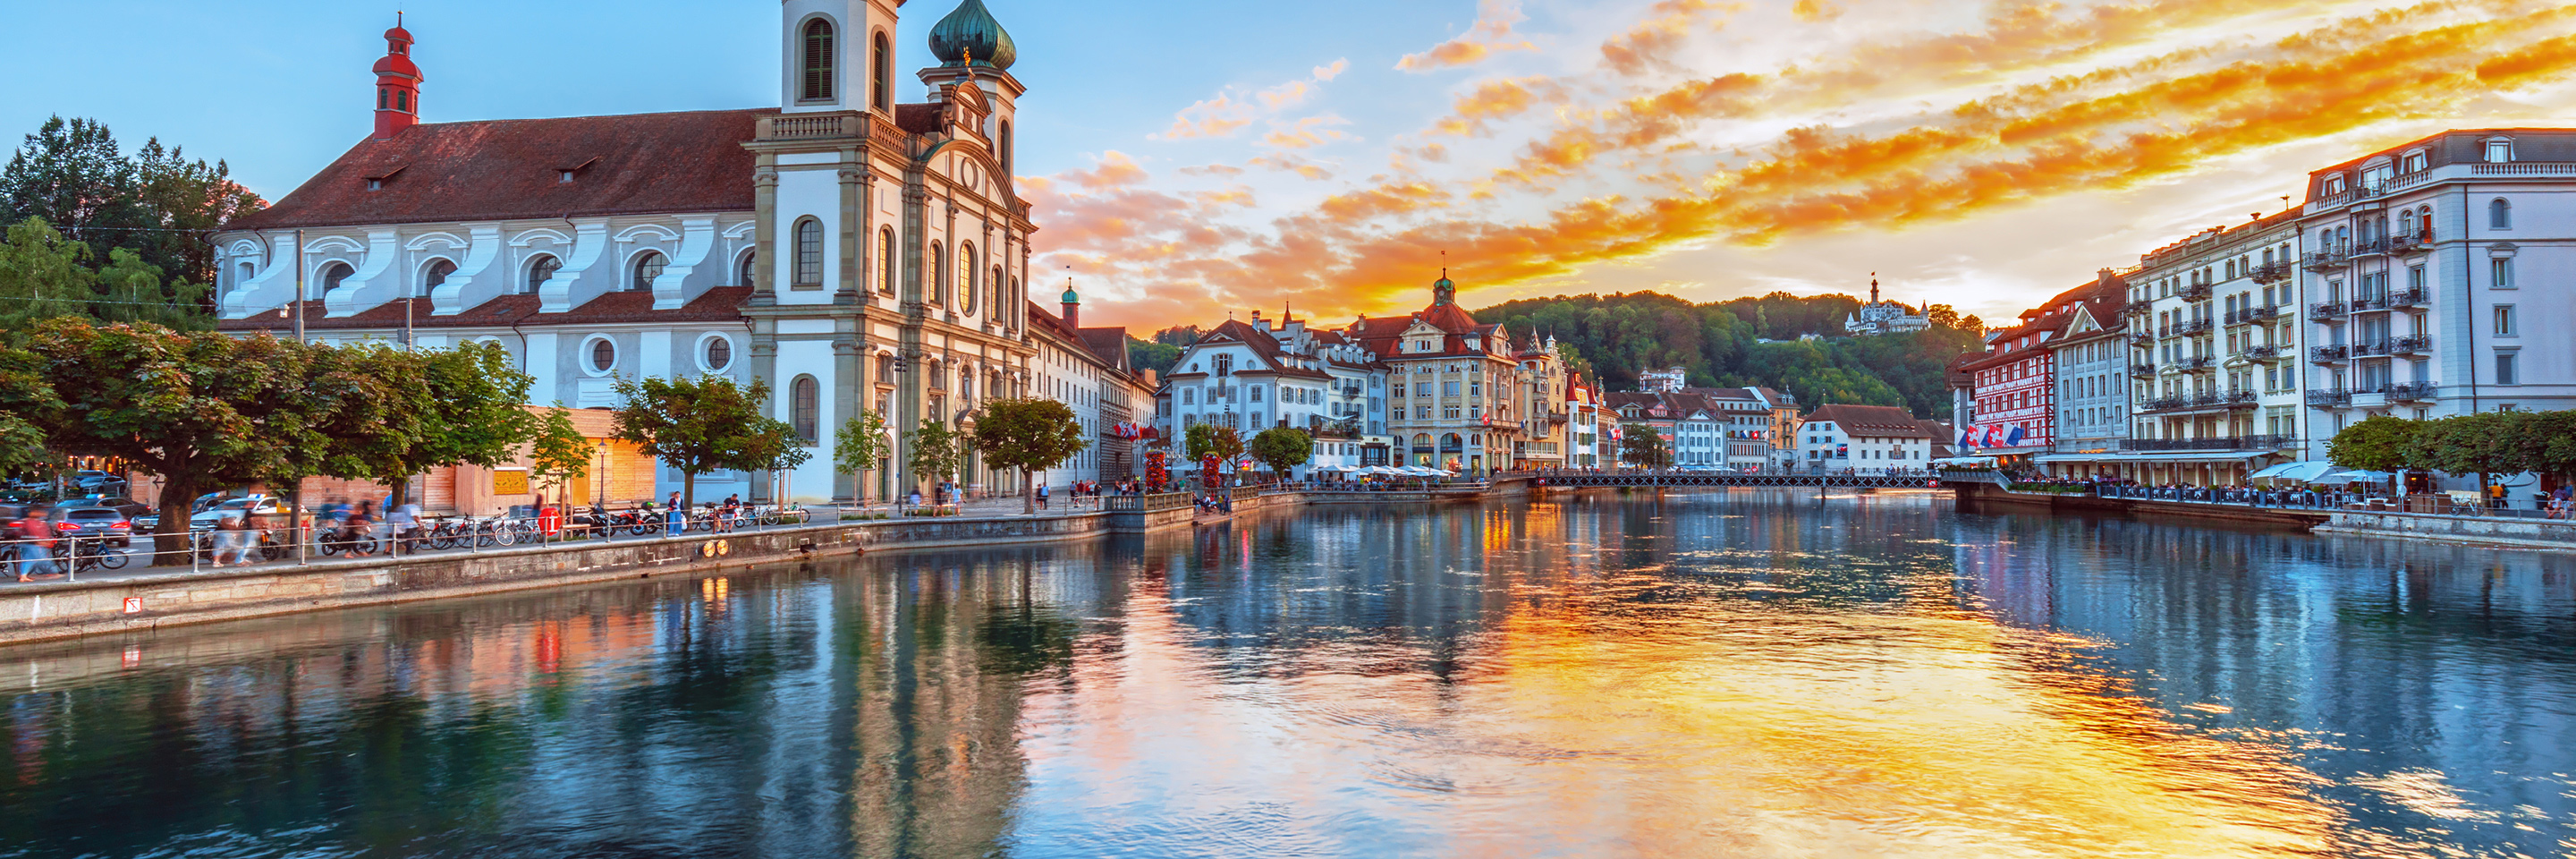 Romantic Rhine Author Cruise with Diana Gabaldon with 2 nights in Lucerne